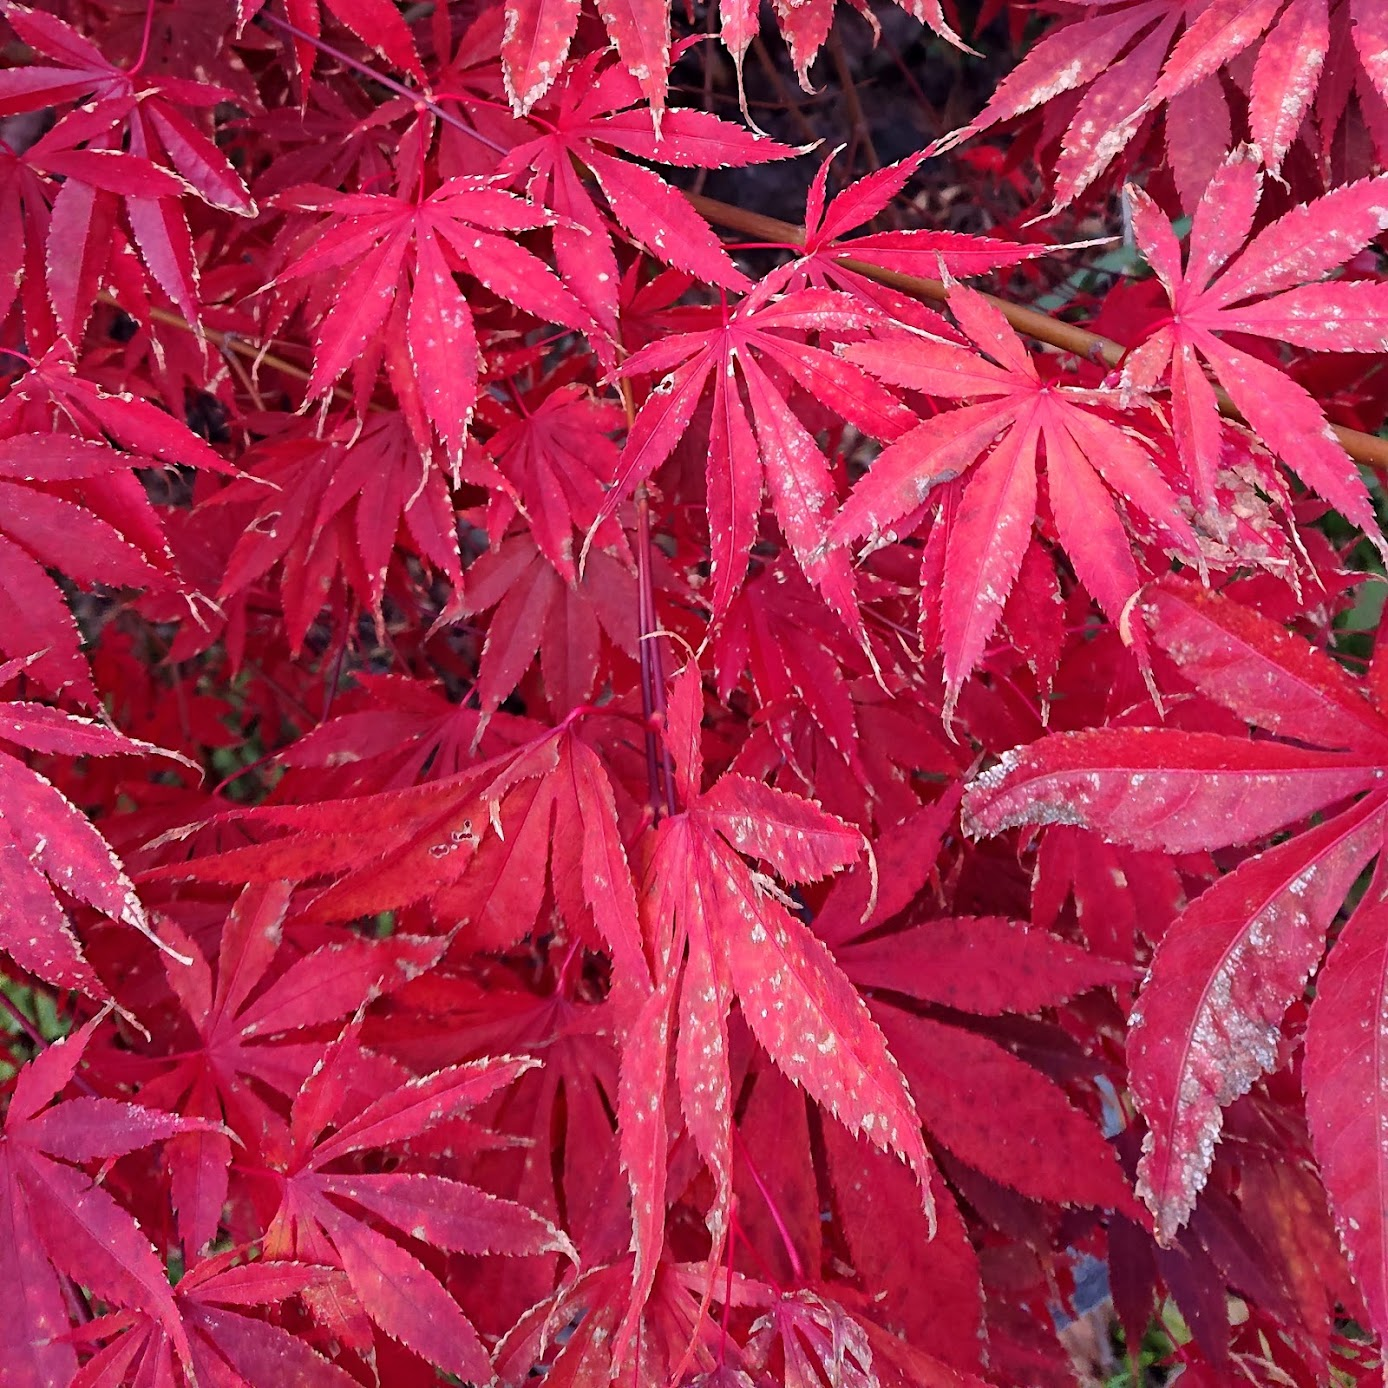 Closeup of Japanese Maple 'Burgundy Lace' Leaves - dyestuff source for batch #3 | FAFAFOOM STUDIO